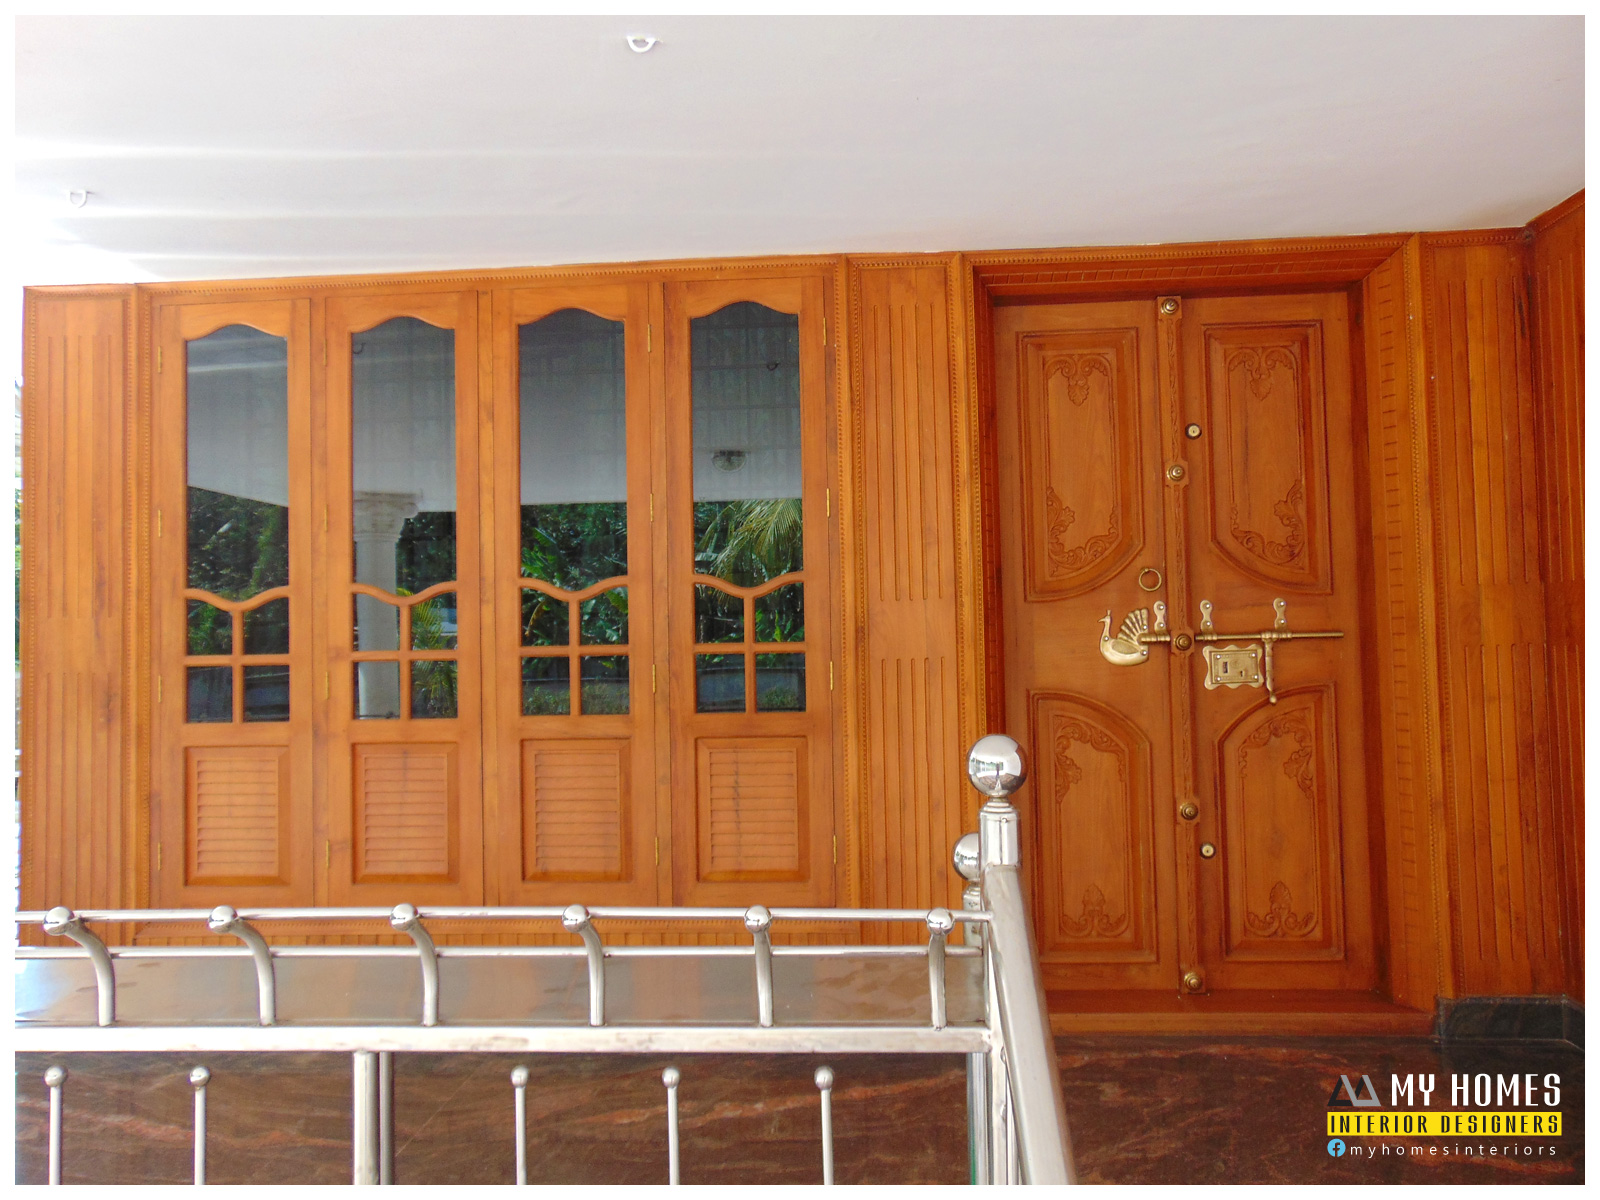 Kerala interior design ideas from designing company thrissur for Home front door design indian style